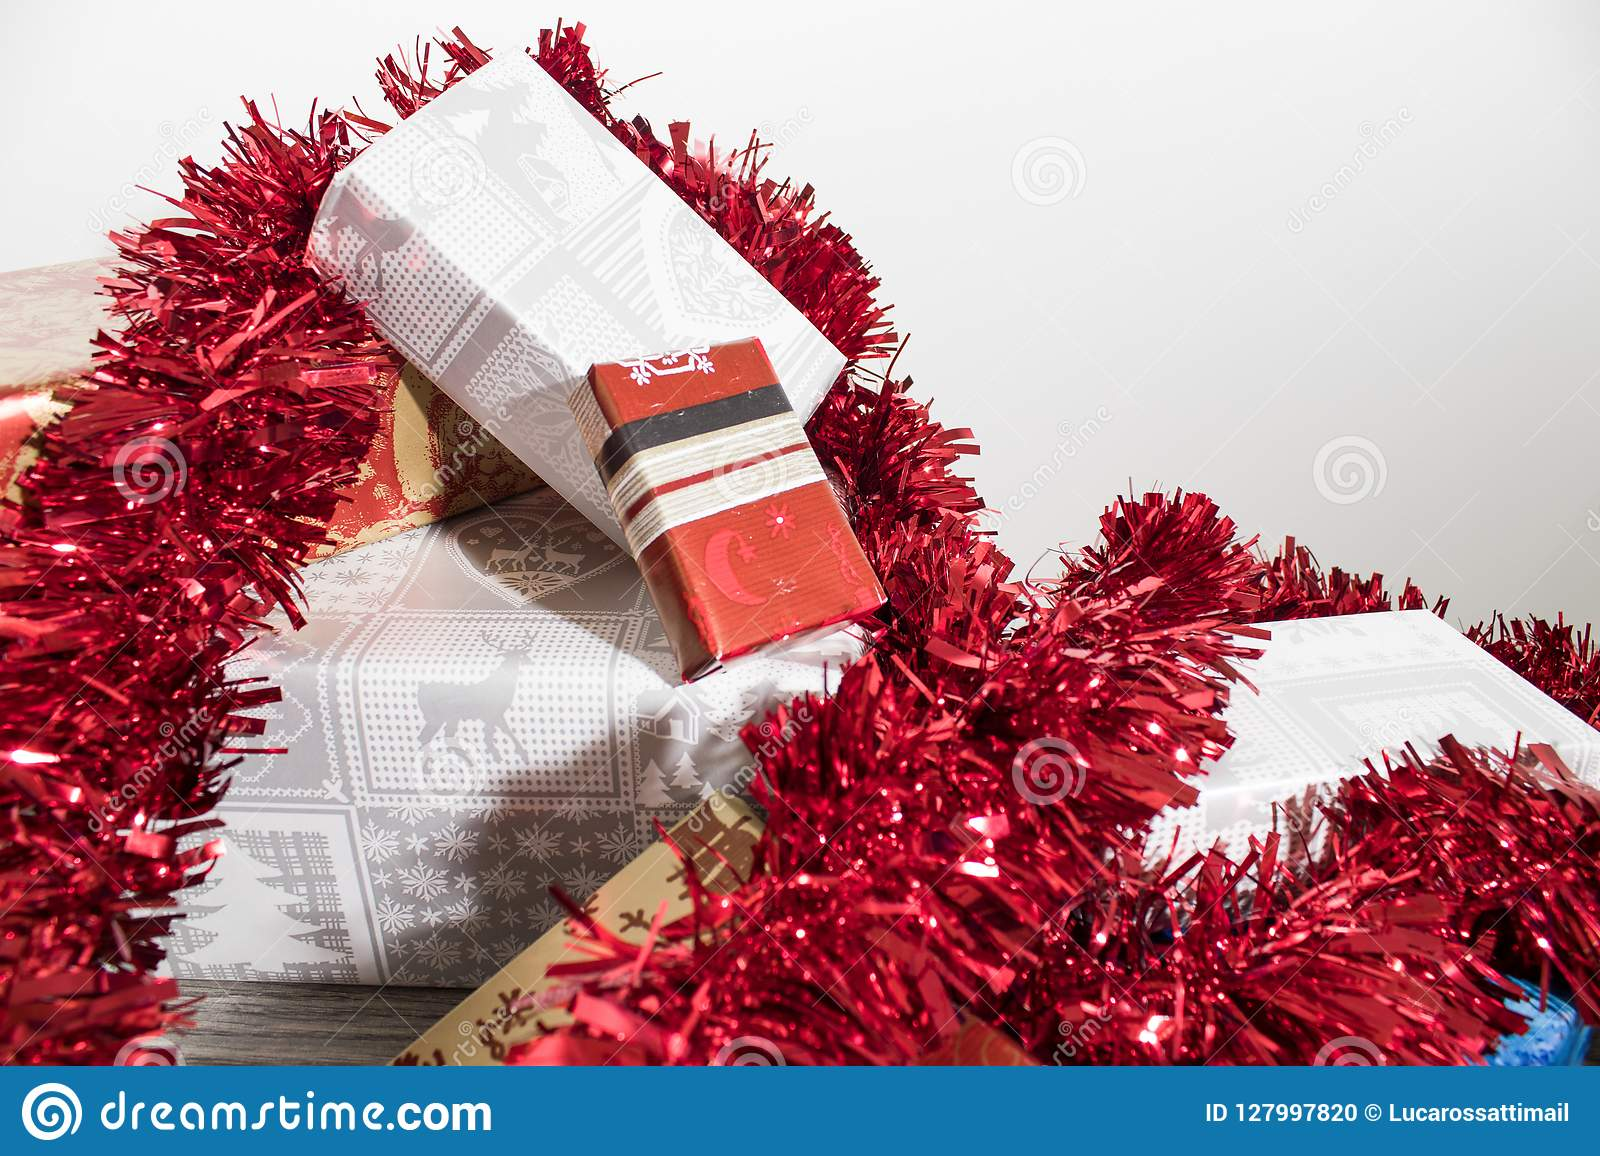 Many colorful christmas gifts with decorations on a wood table